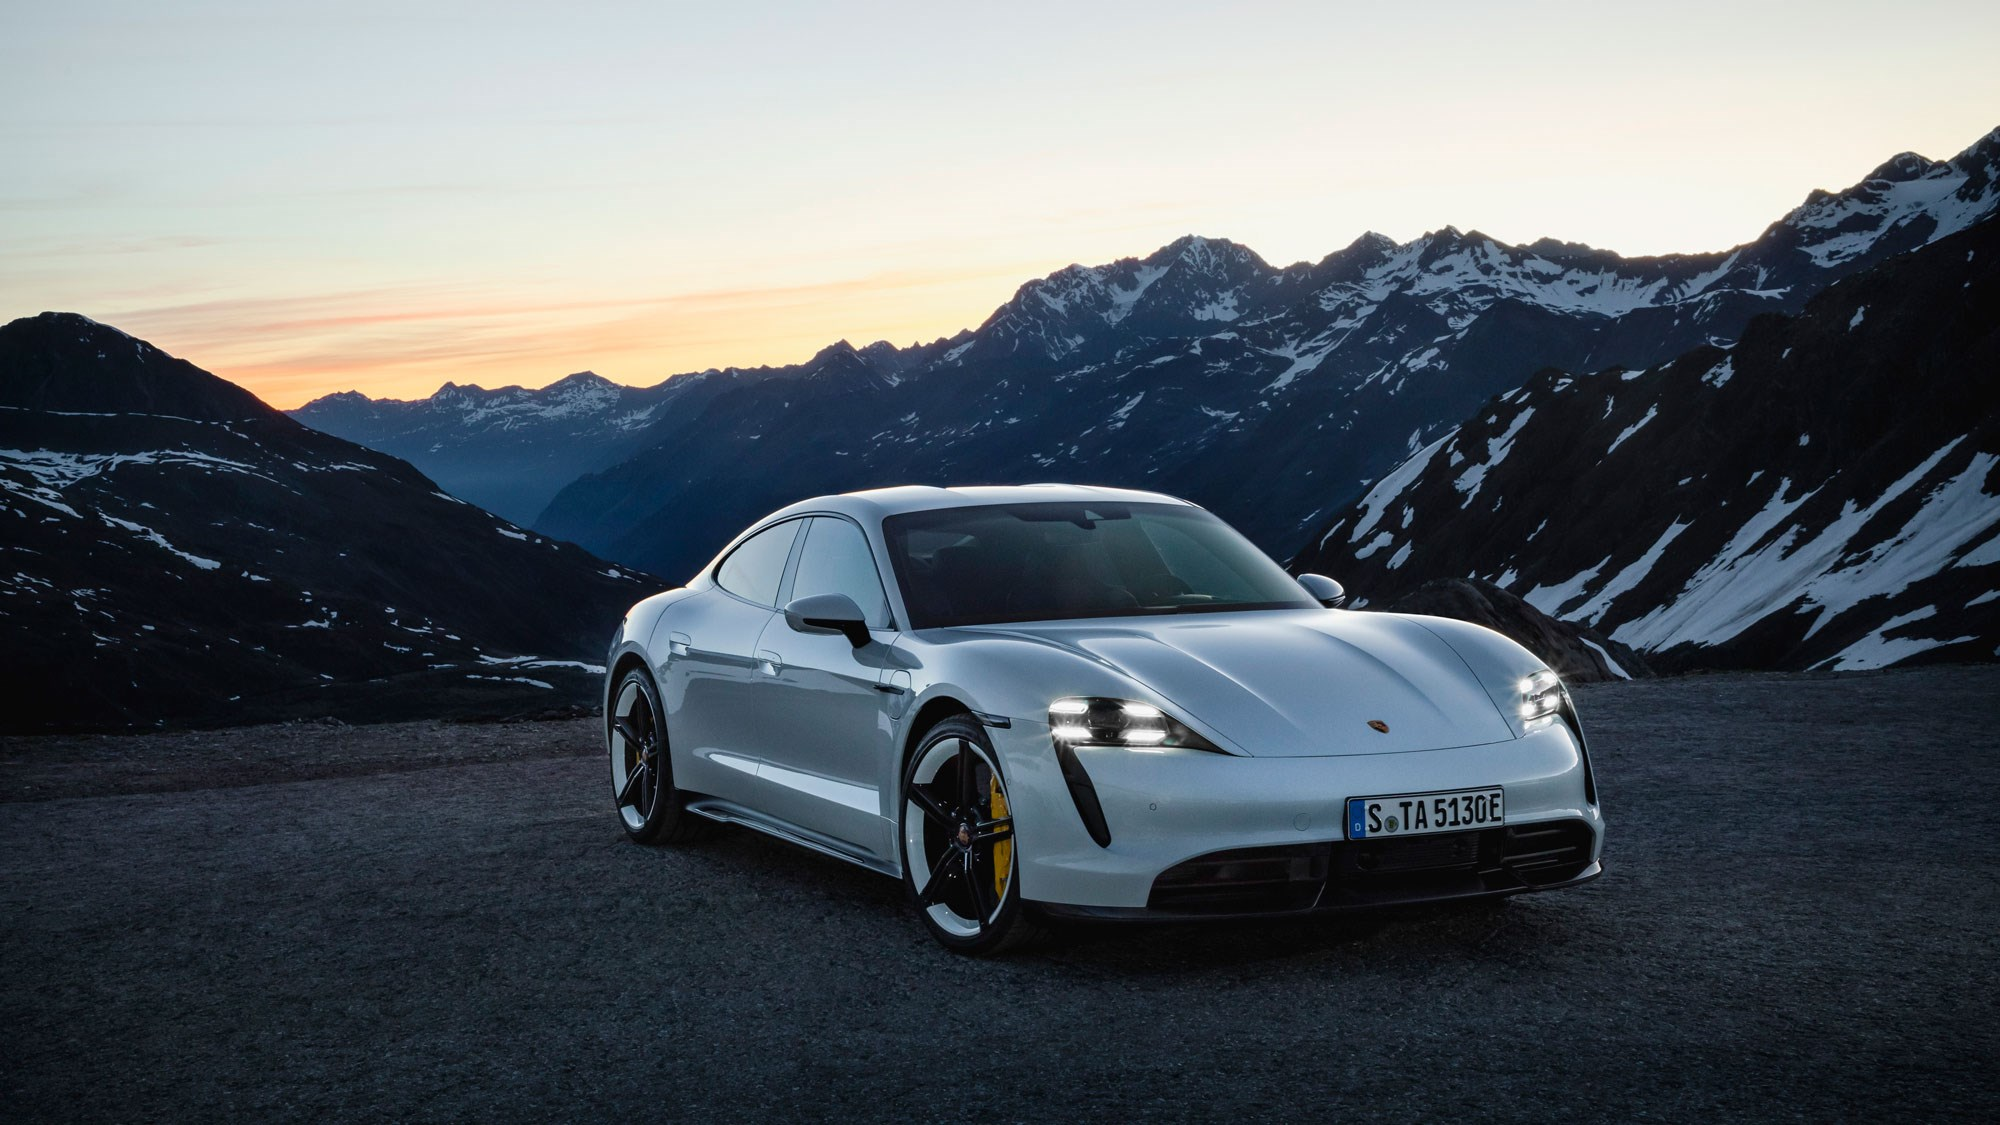 Porsche Taycan Specs Pricing And More On New High Tech